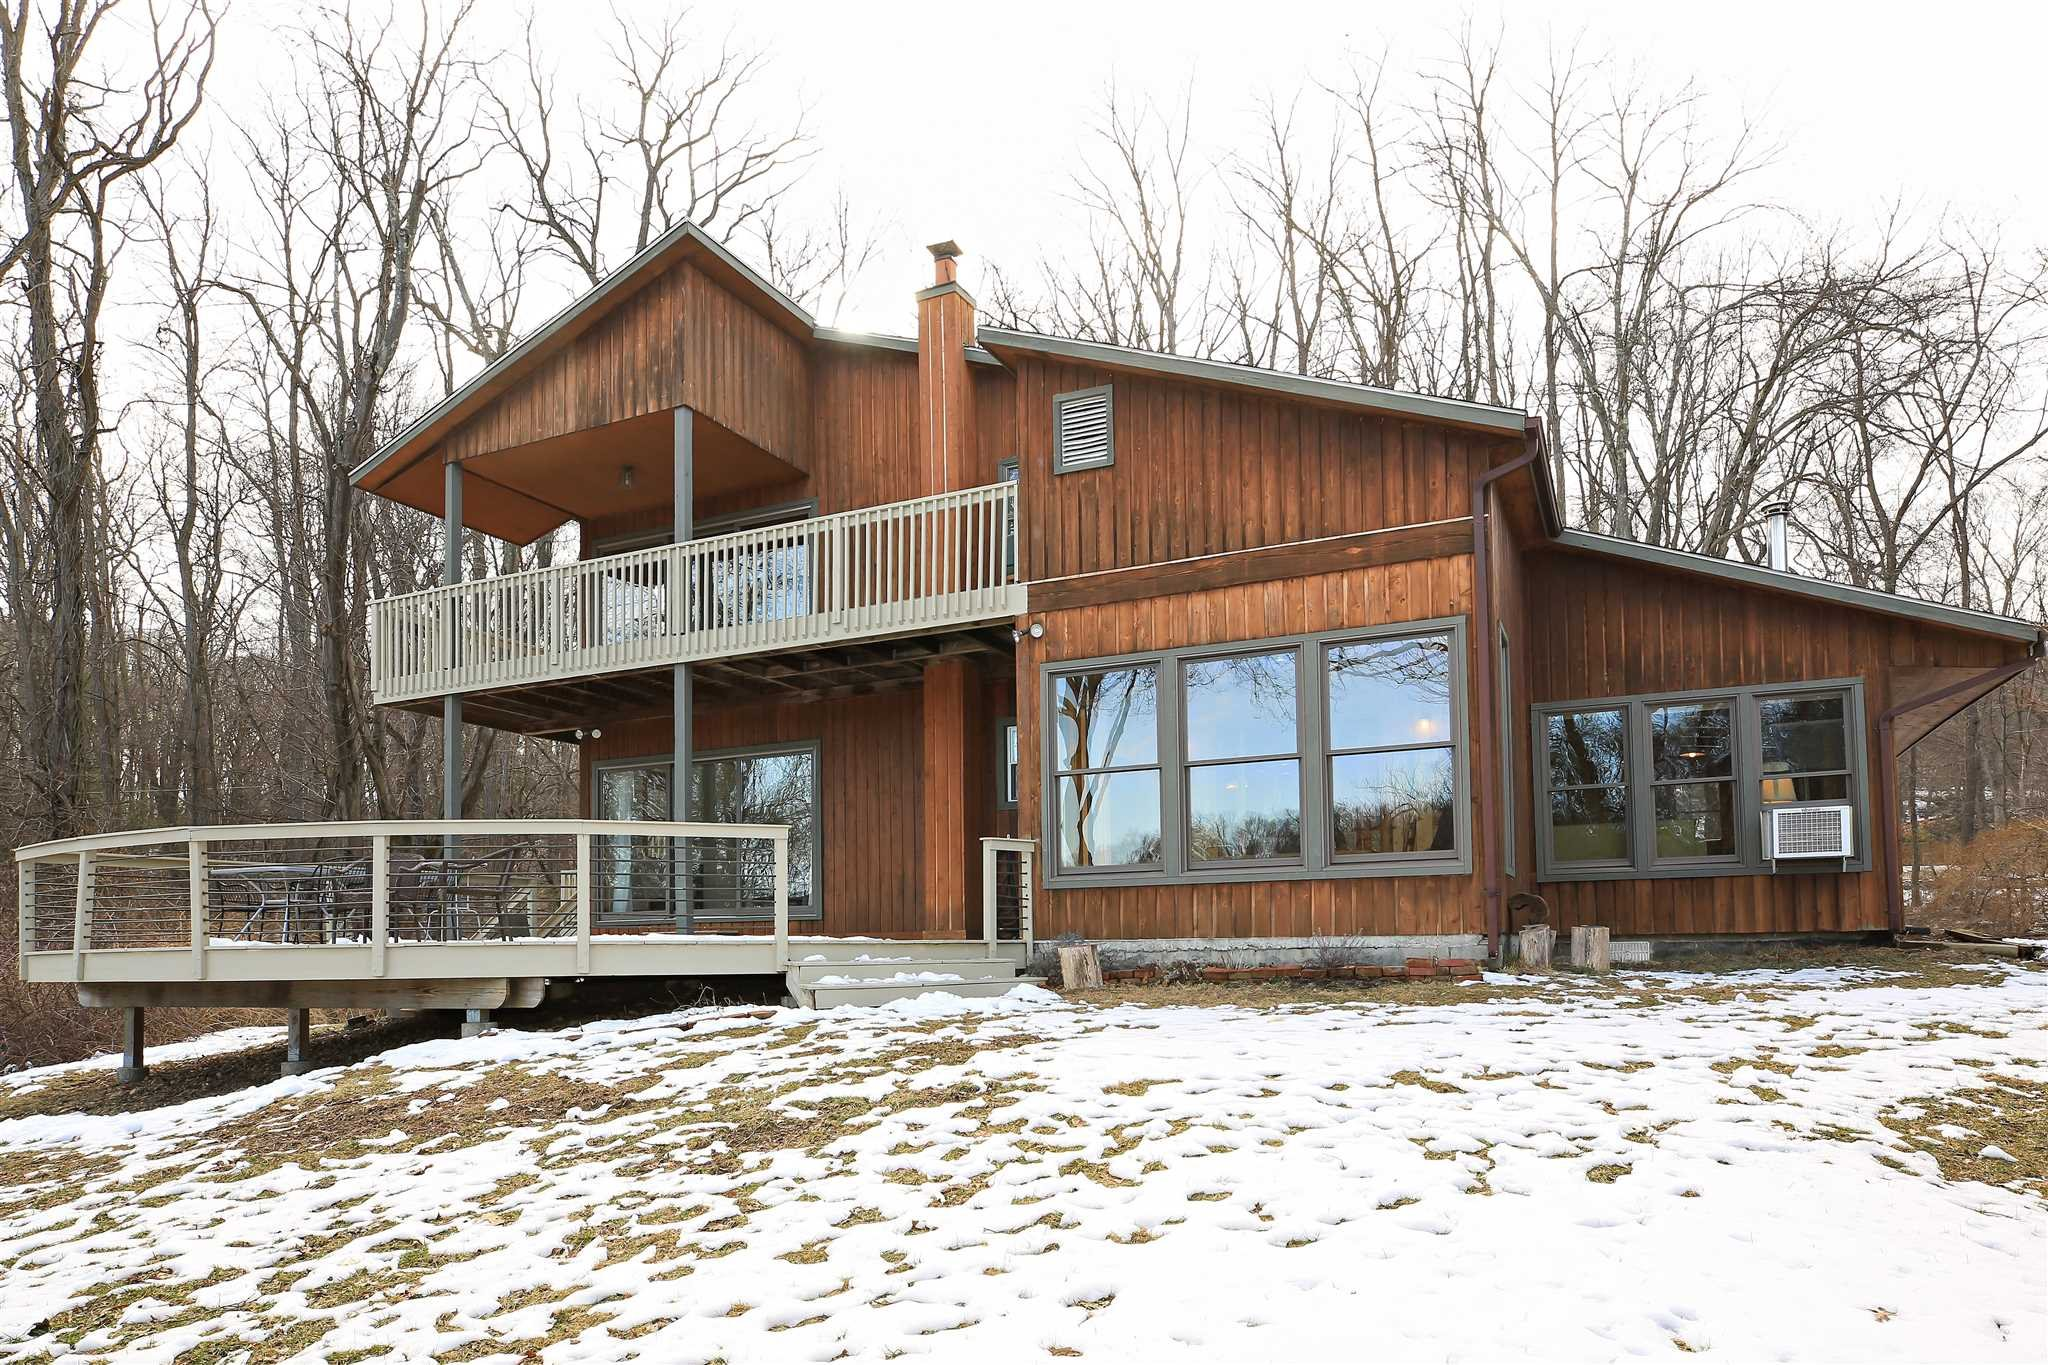 Single Family Home for Sale at 70 BARRETT POND ROAD 70 BARRETT POND ROAD Philipstown, New York 10516 United States